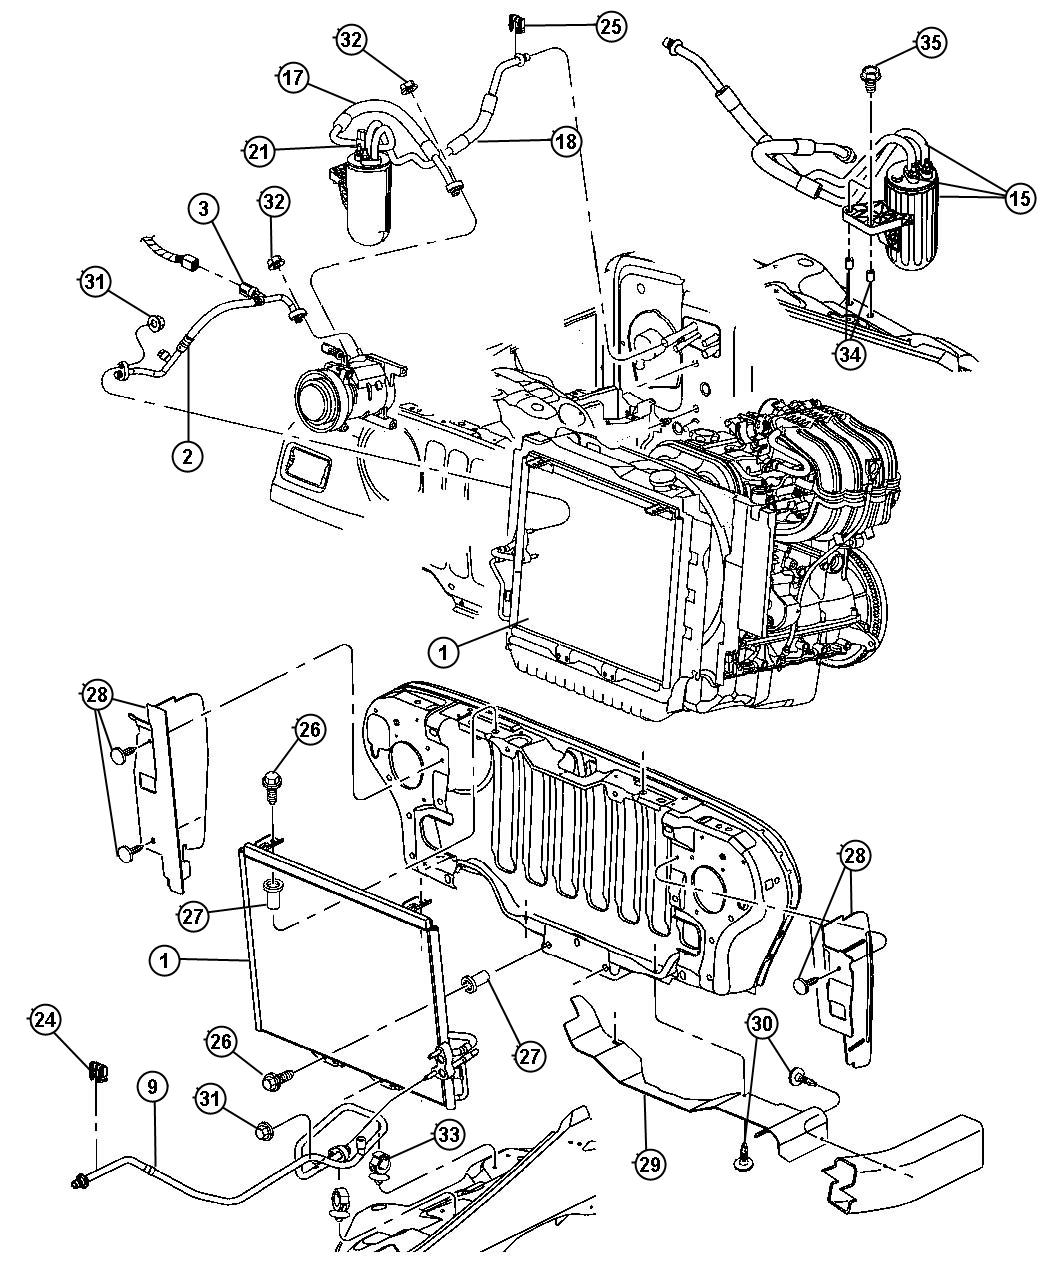 Jeep Parts Schematic Diagram Real Wiring 2013 Compass Engine 2007 2015 Oem Free Image Wrangler